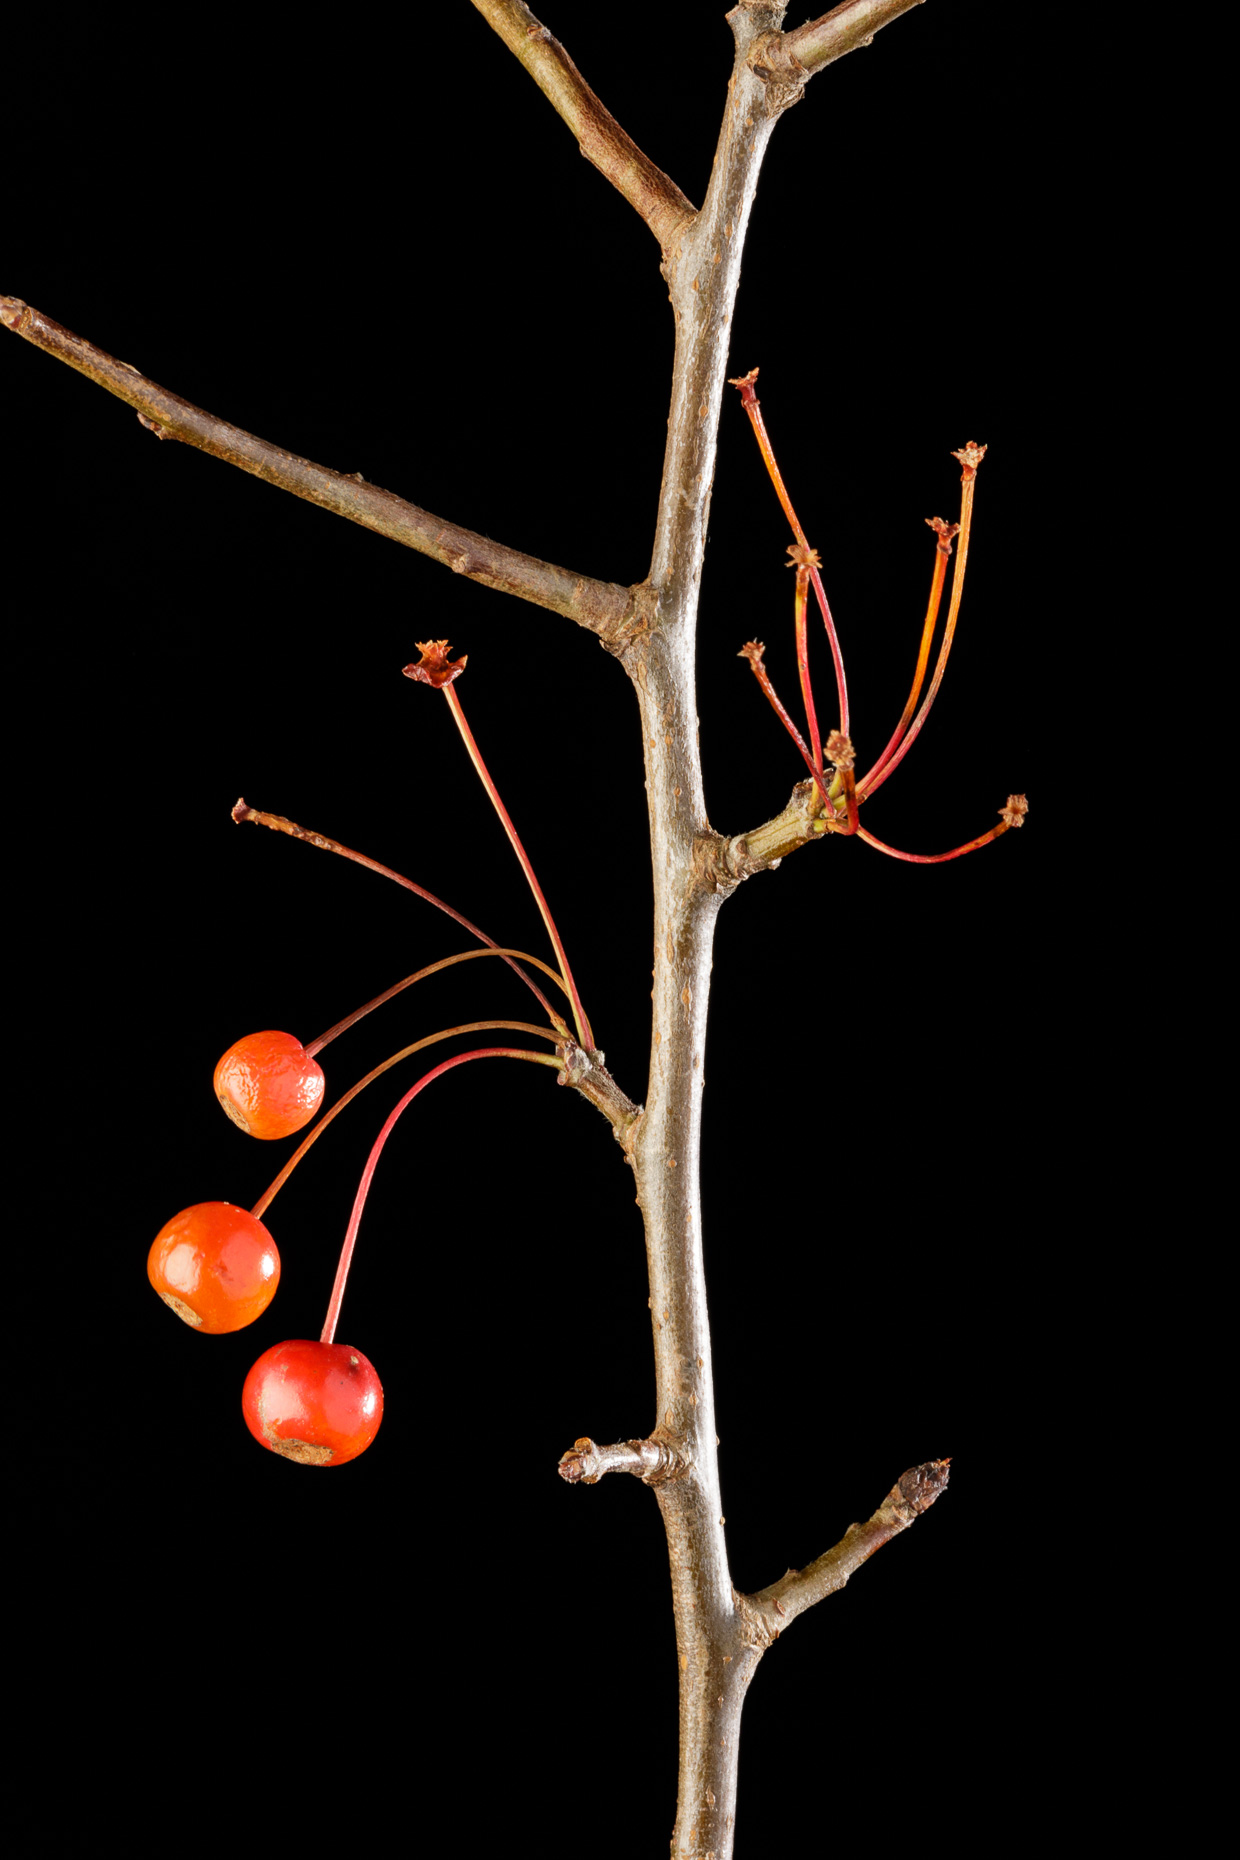 Crapapple stem and fruit